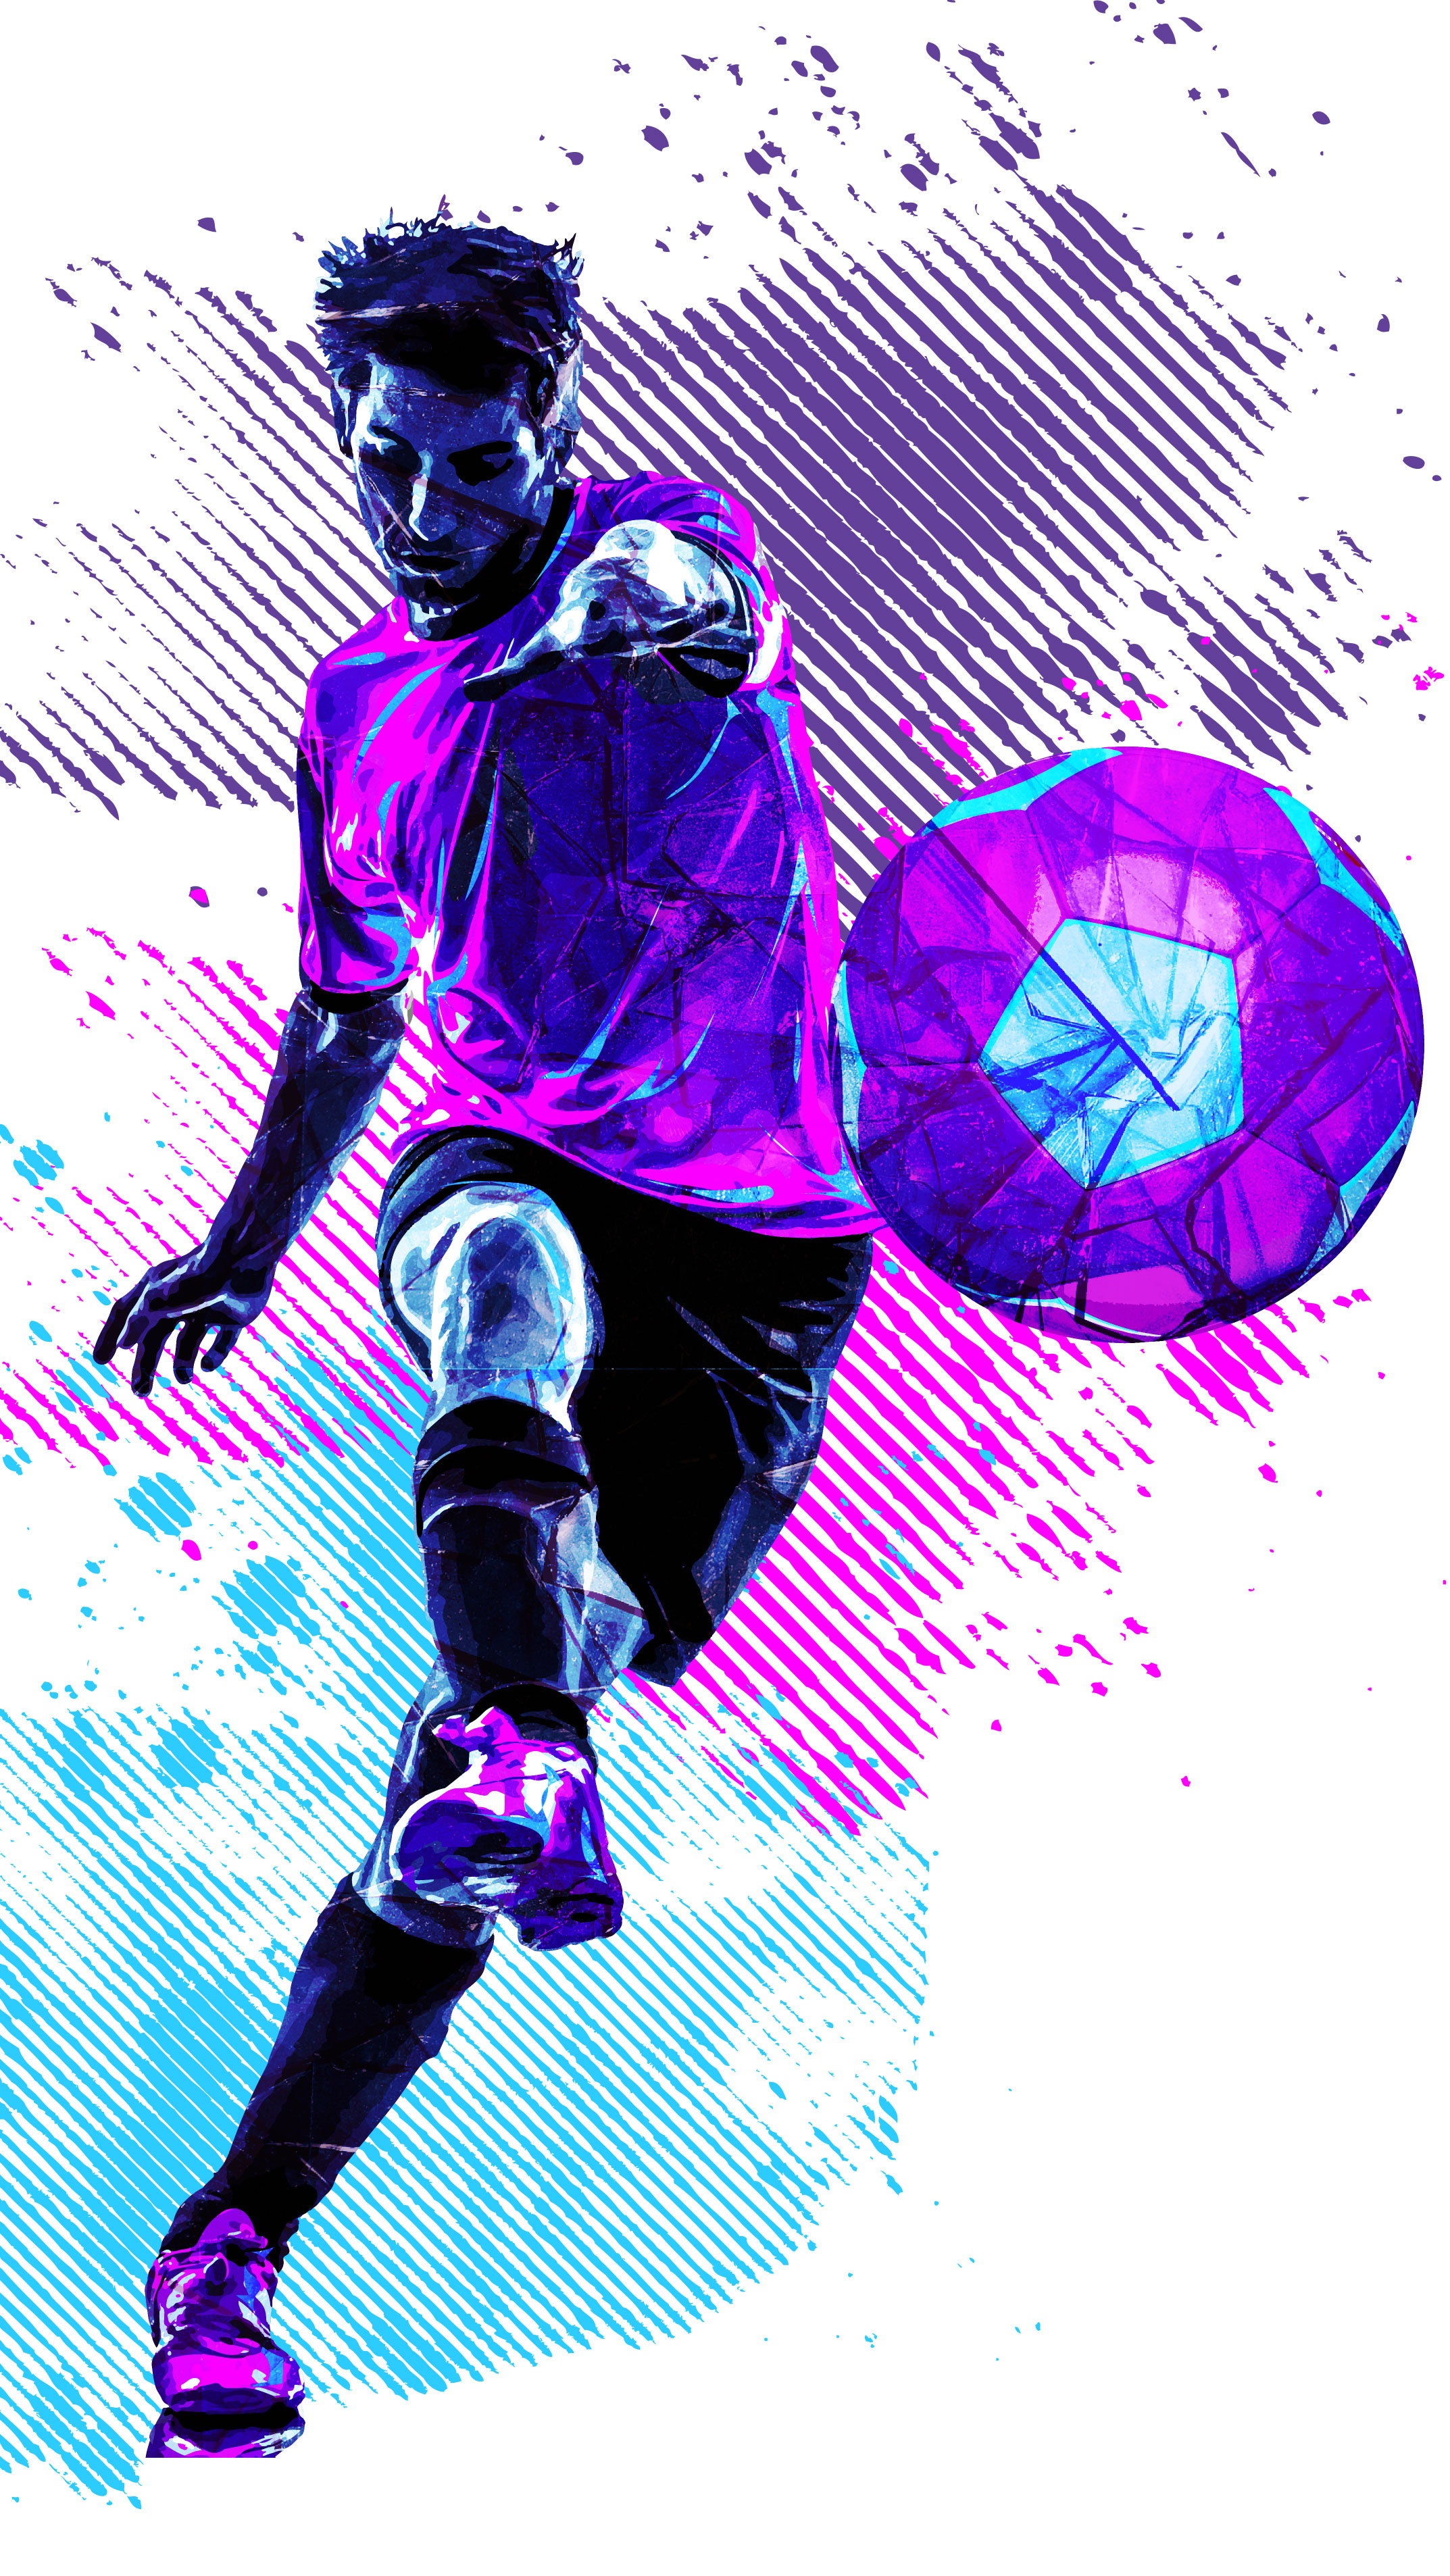 Soccerman-Purple-REVISED-01.jpg